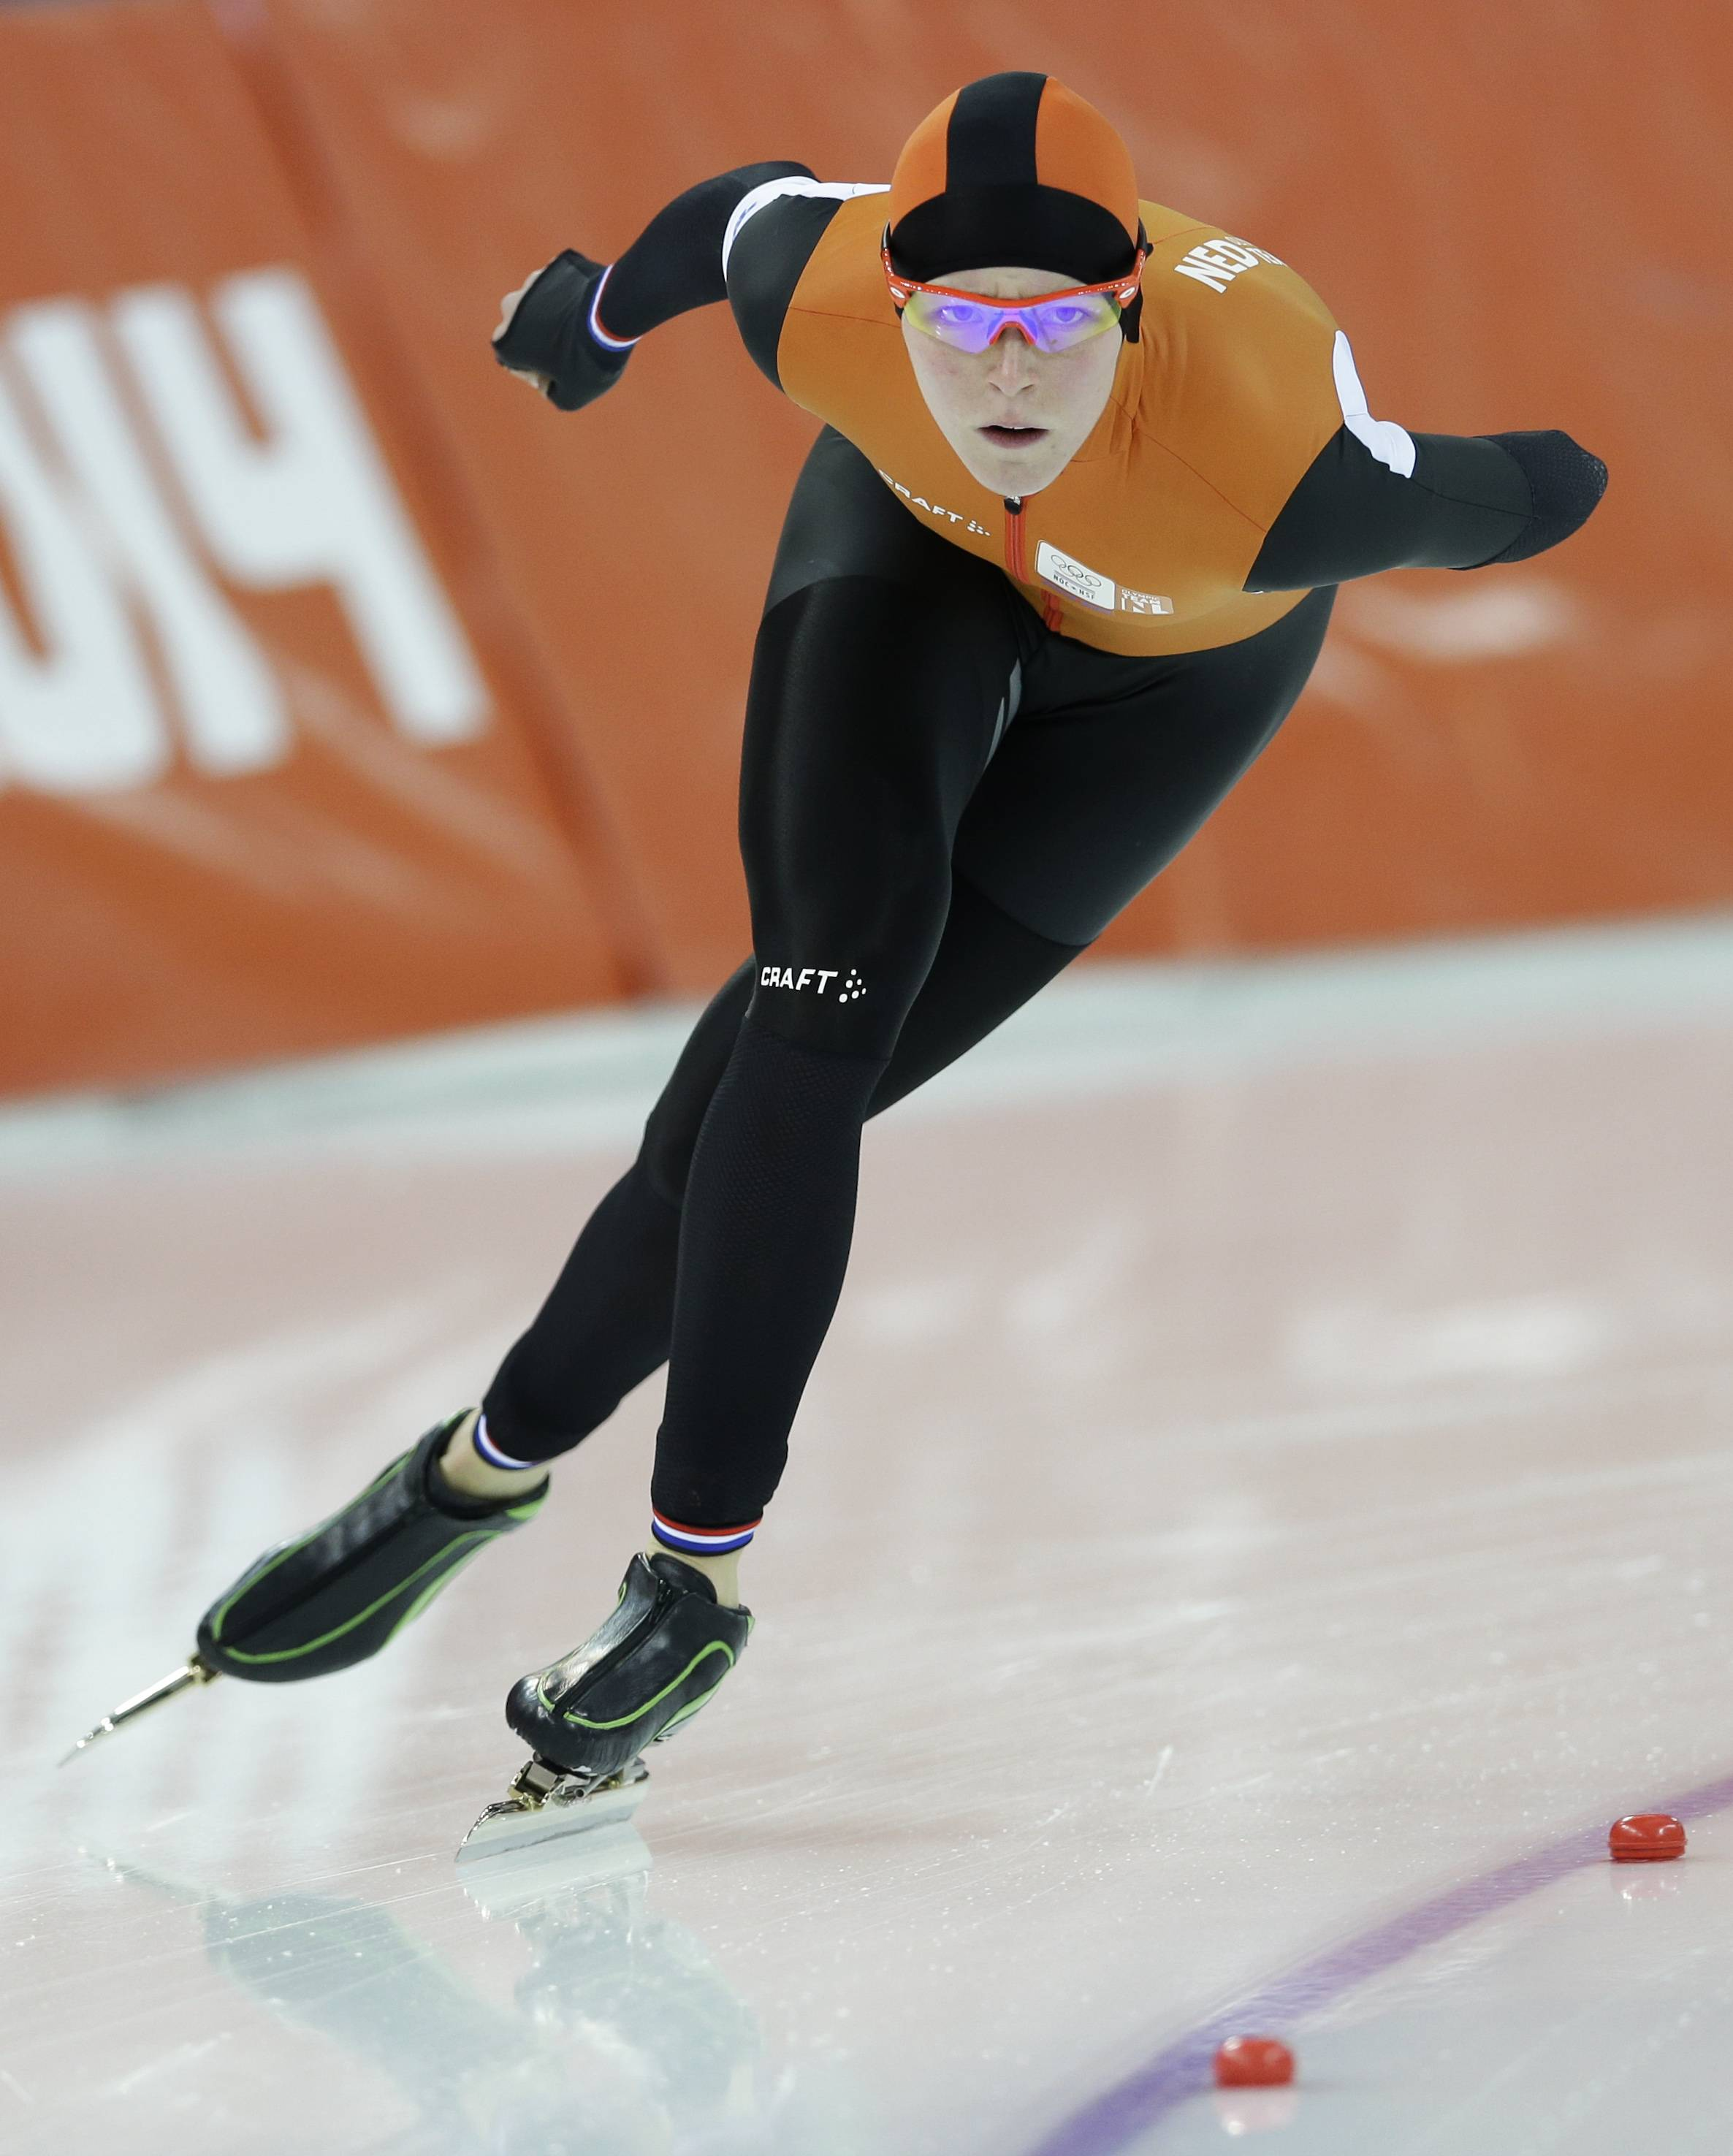 Jorien ter Mors of the Netherlands skates her way to set a new Olympic record in the women's 1,500-meter race at the Adler Arena Skating Center during the 2014 Winter Olympics in Sochi, Russia, Sunday, Feb. 16, 2014.